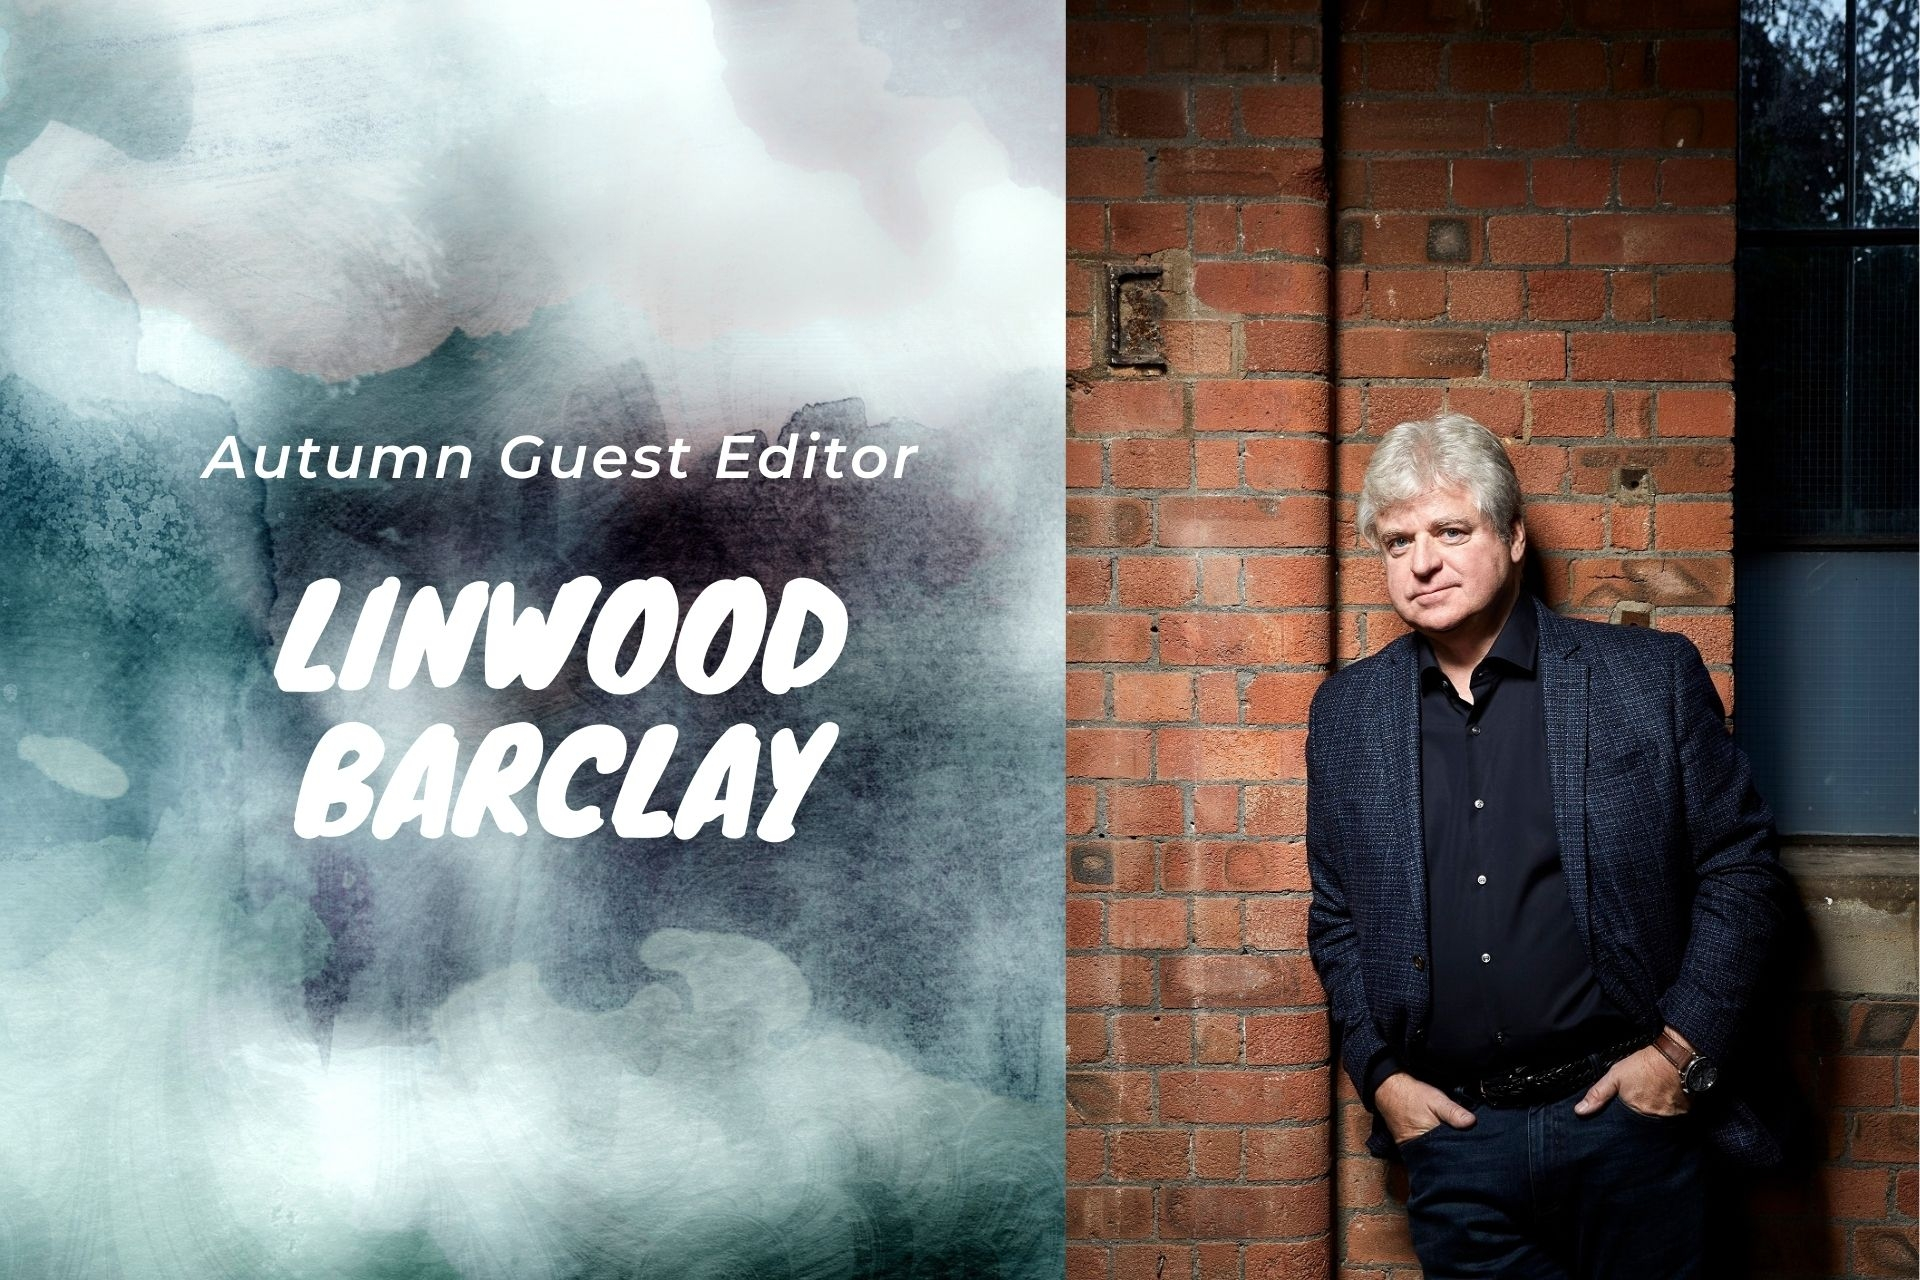 Guest Editor, Autumn 2021 - Linwood Barclay